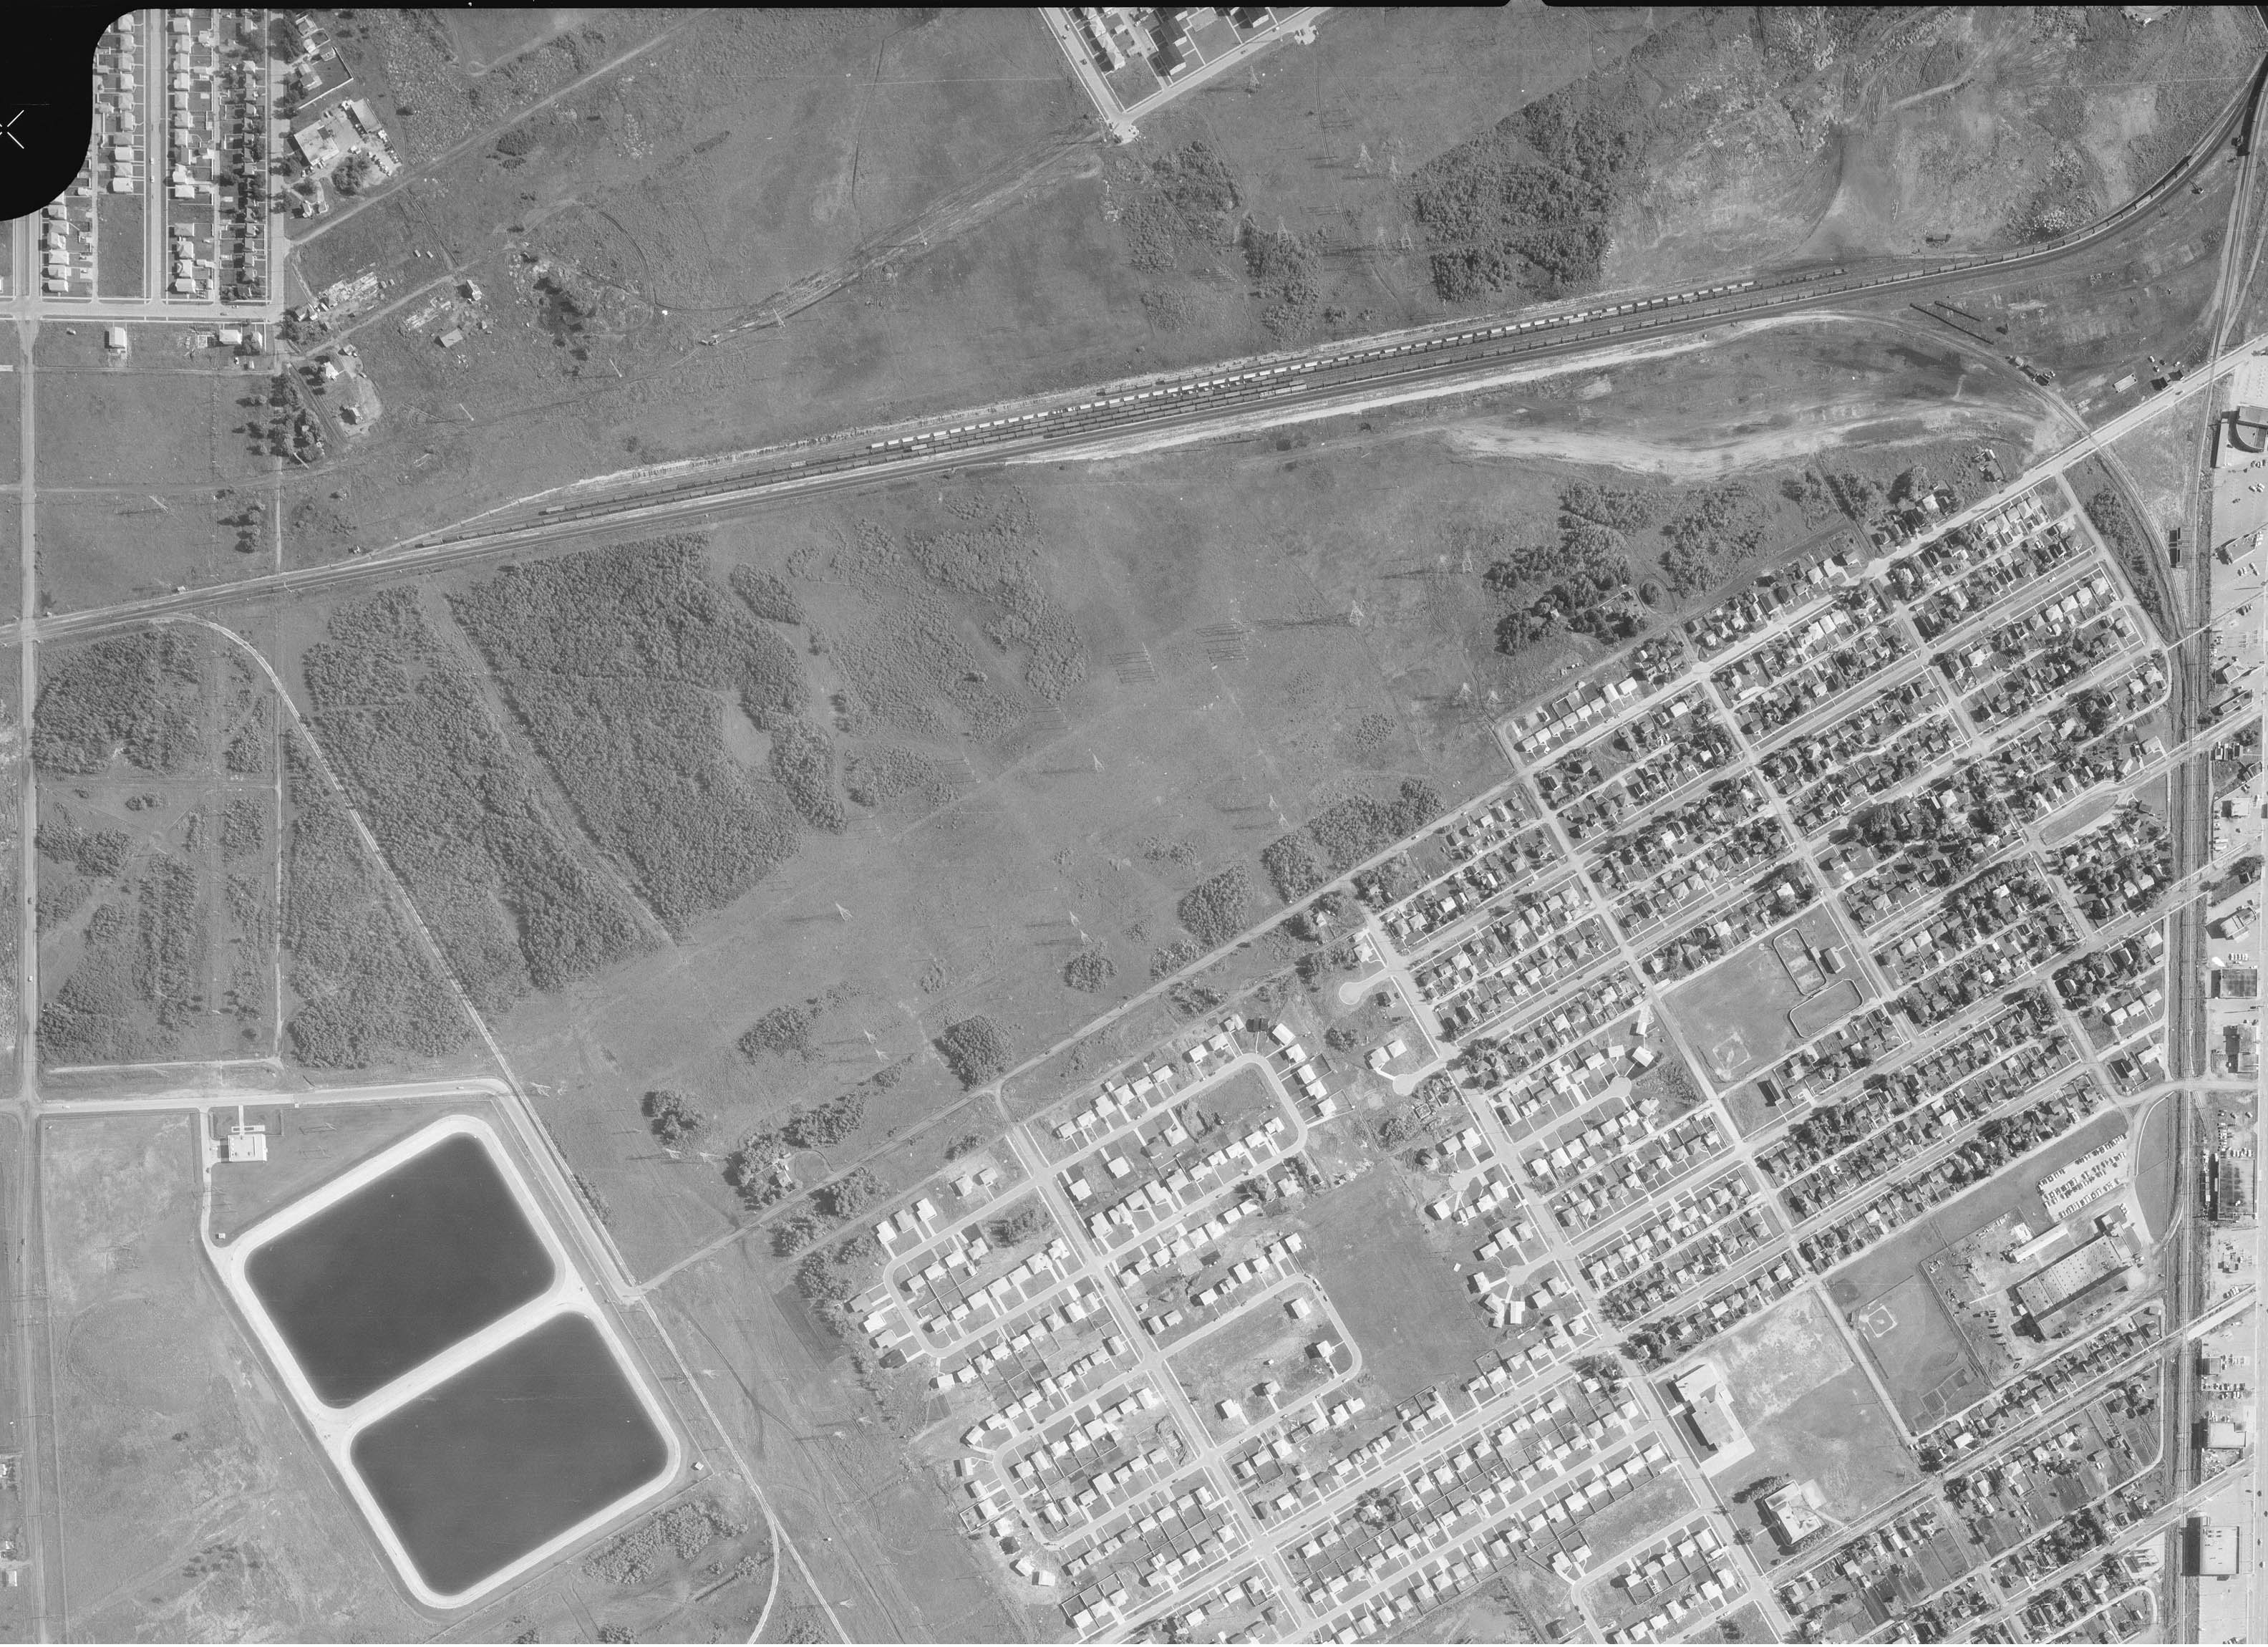 1962 Aerial Photo from National Earth Observation Data Framework, Govt. of Canada